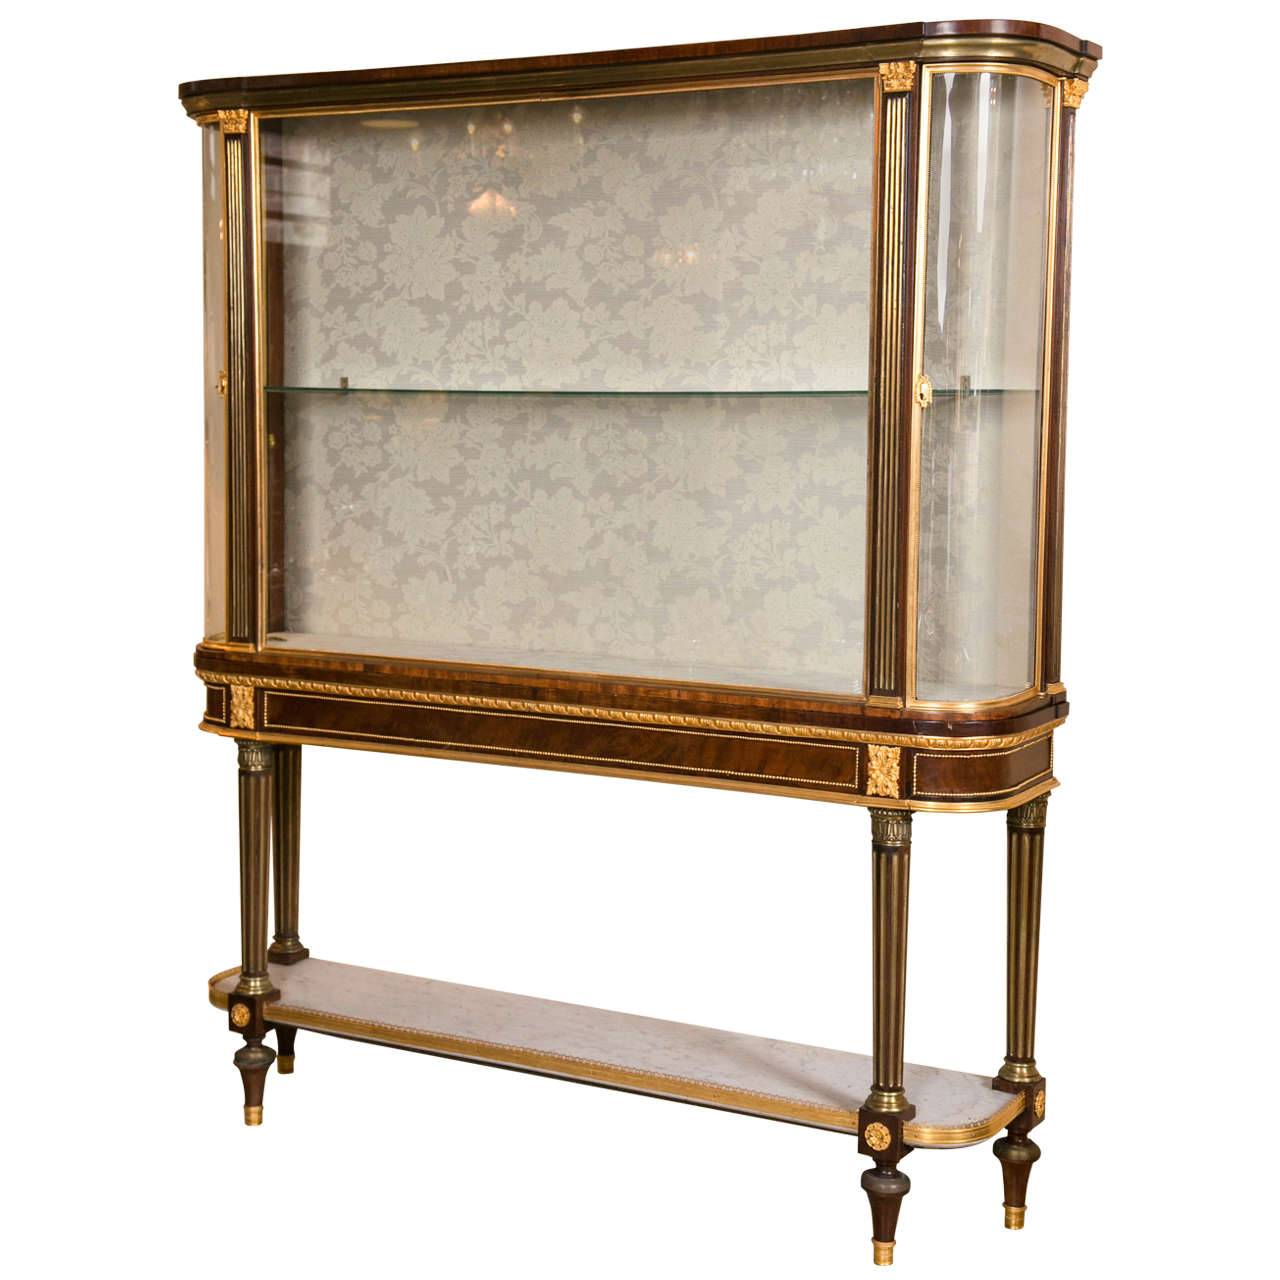 Maison jansen bronze mounted vitrine cabinet on stand for for Sideboard vitrine